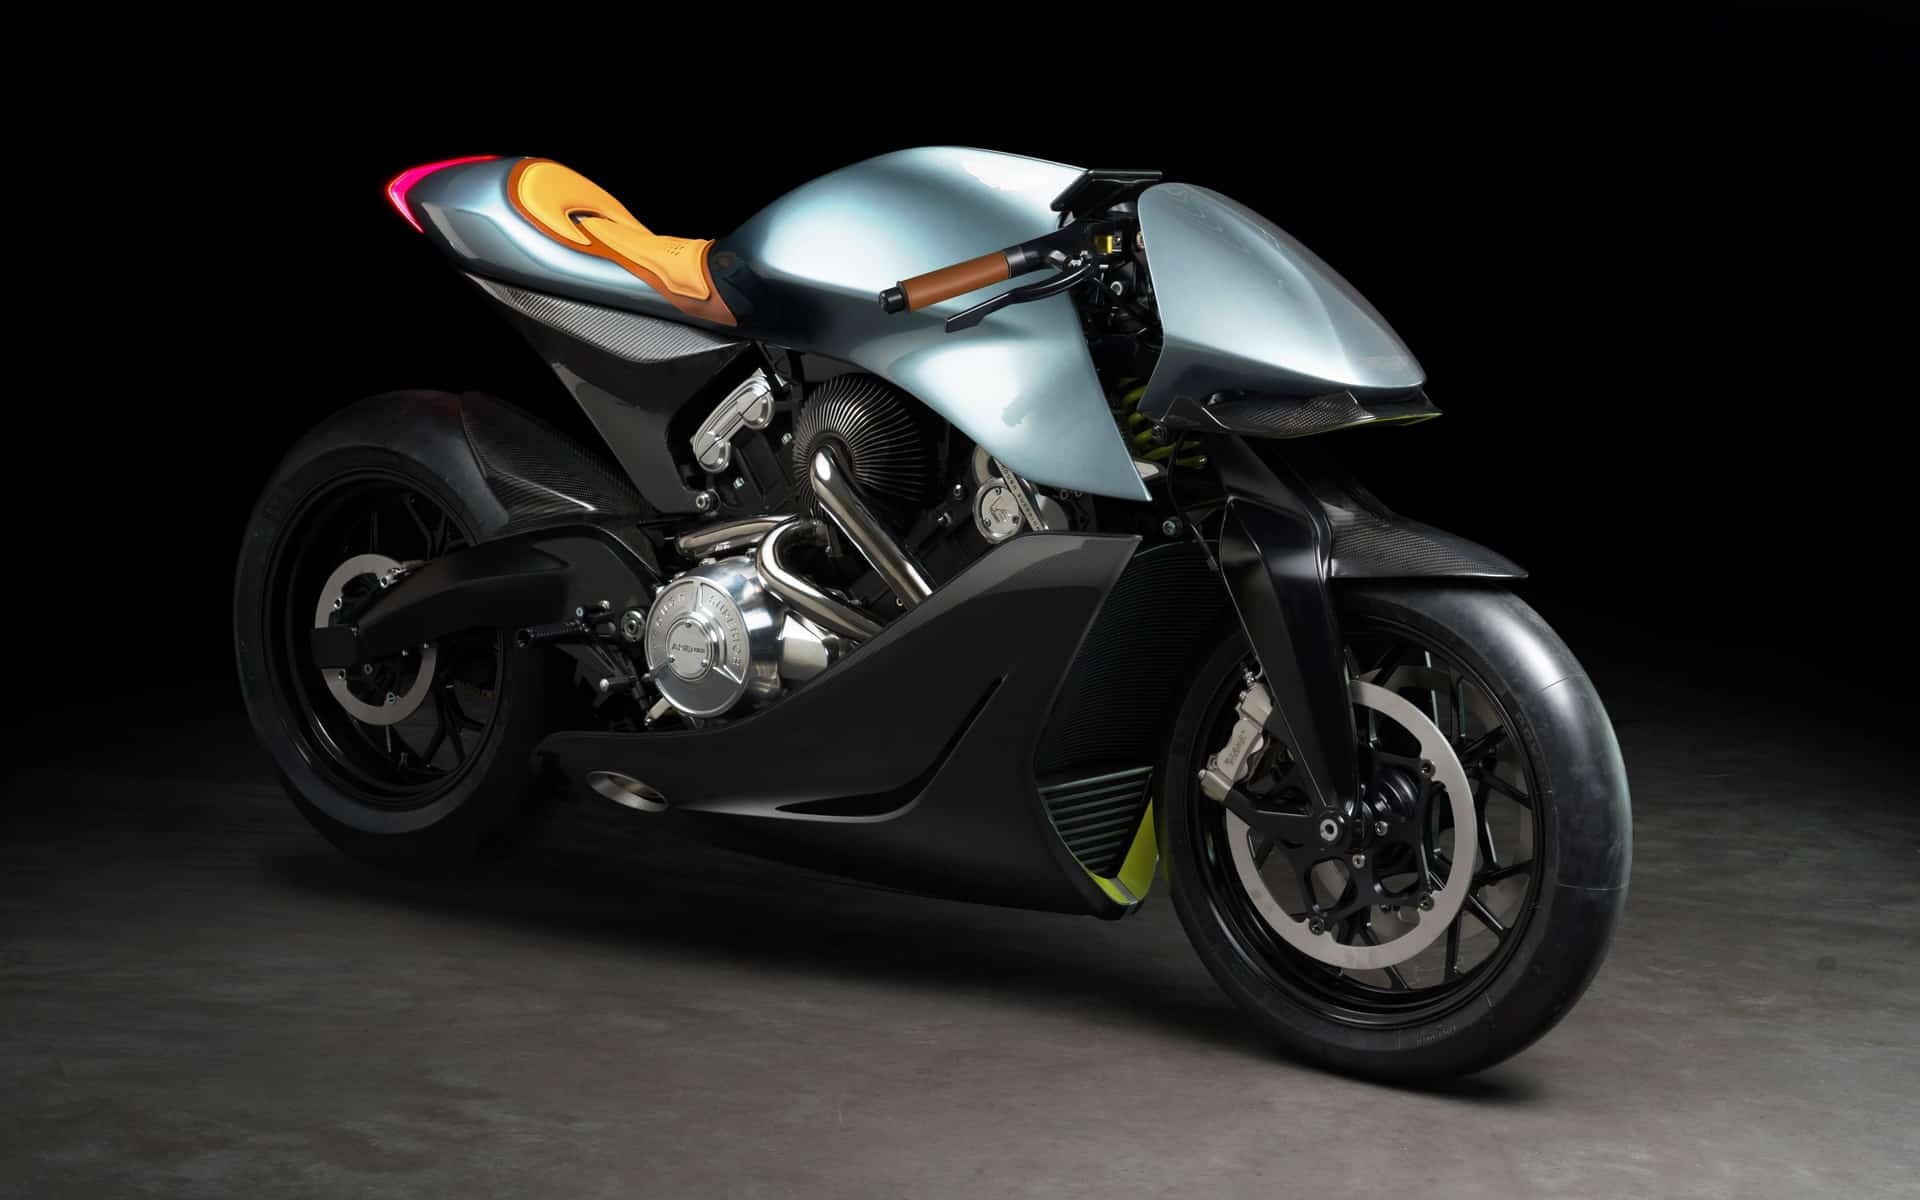 Aston Martin's First Motorcycle is a 10/10 Knockout!